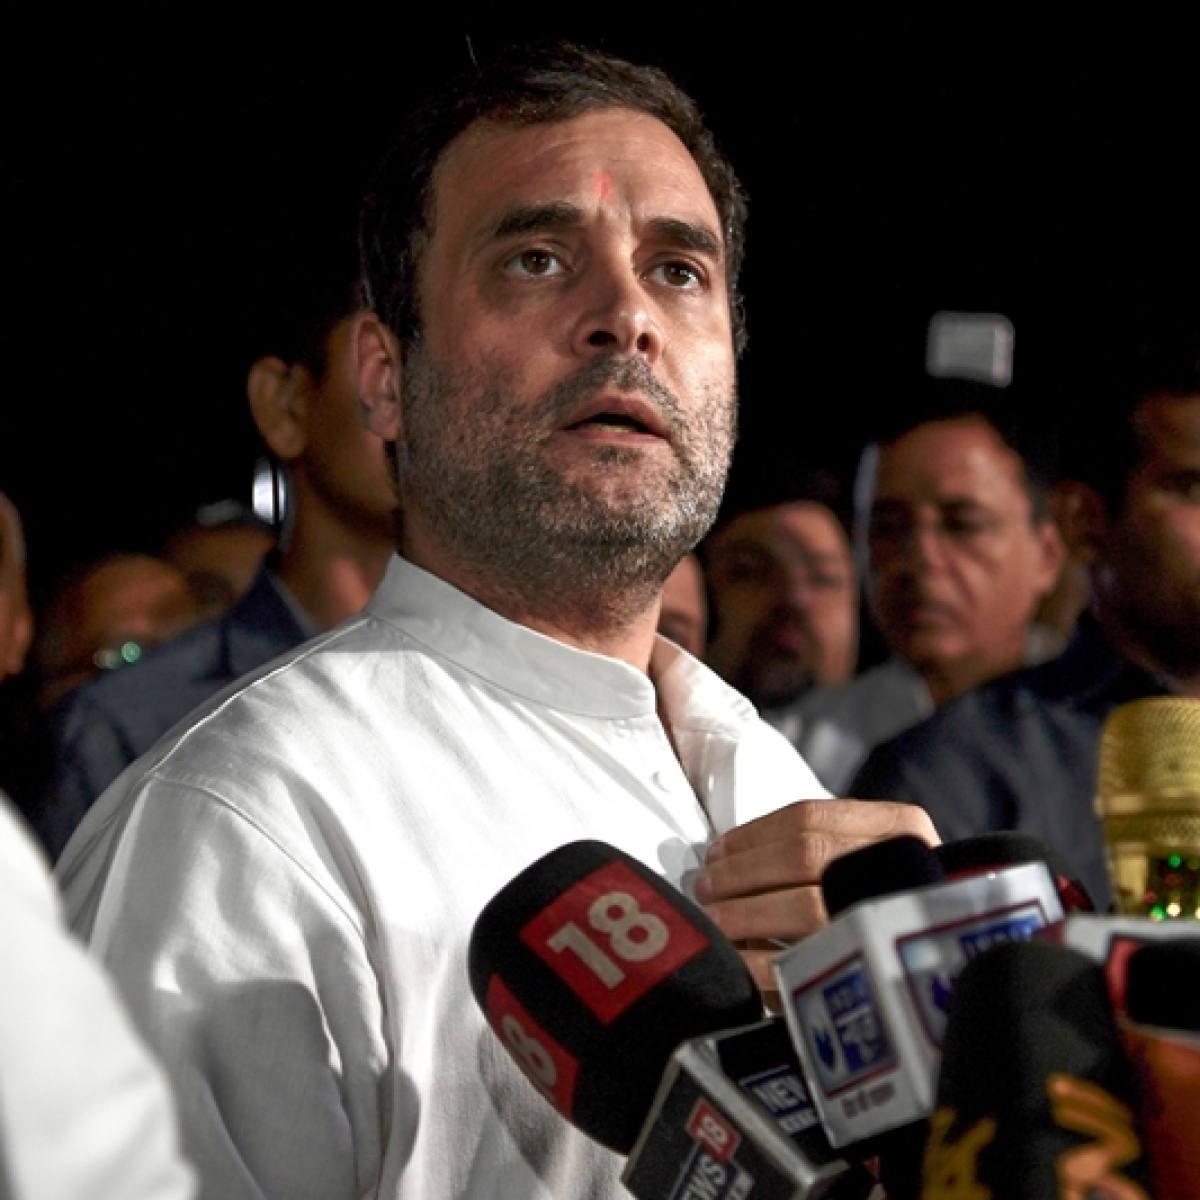 We will work together to resolve issues Wayanad is facing: Rahul Gandhi